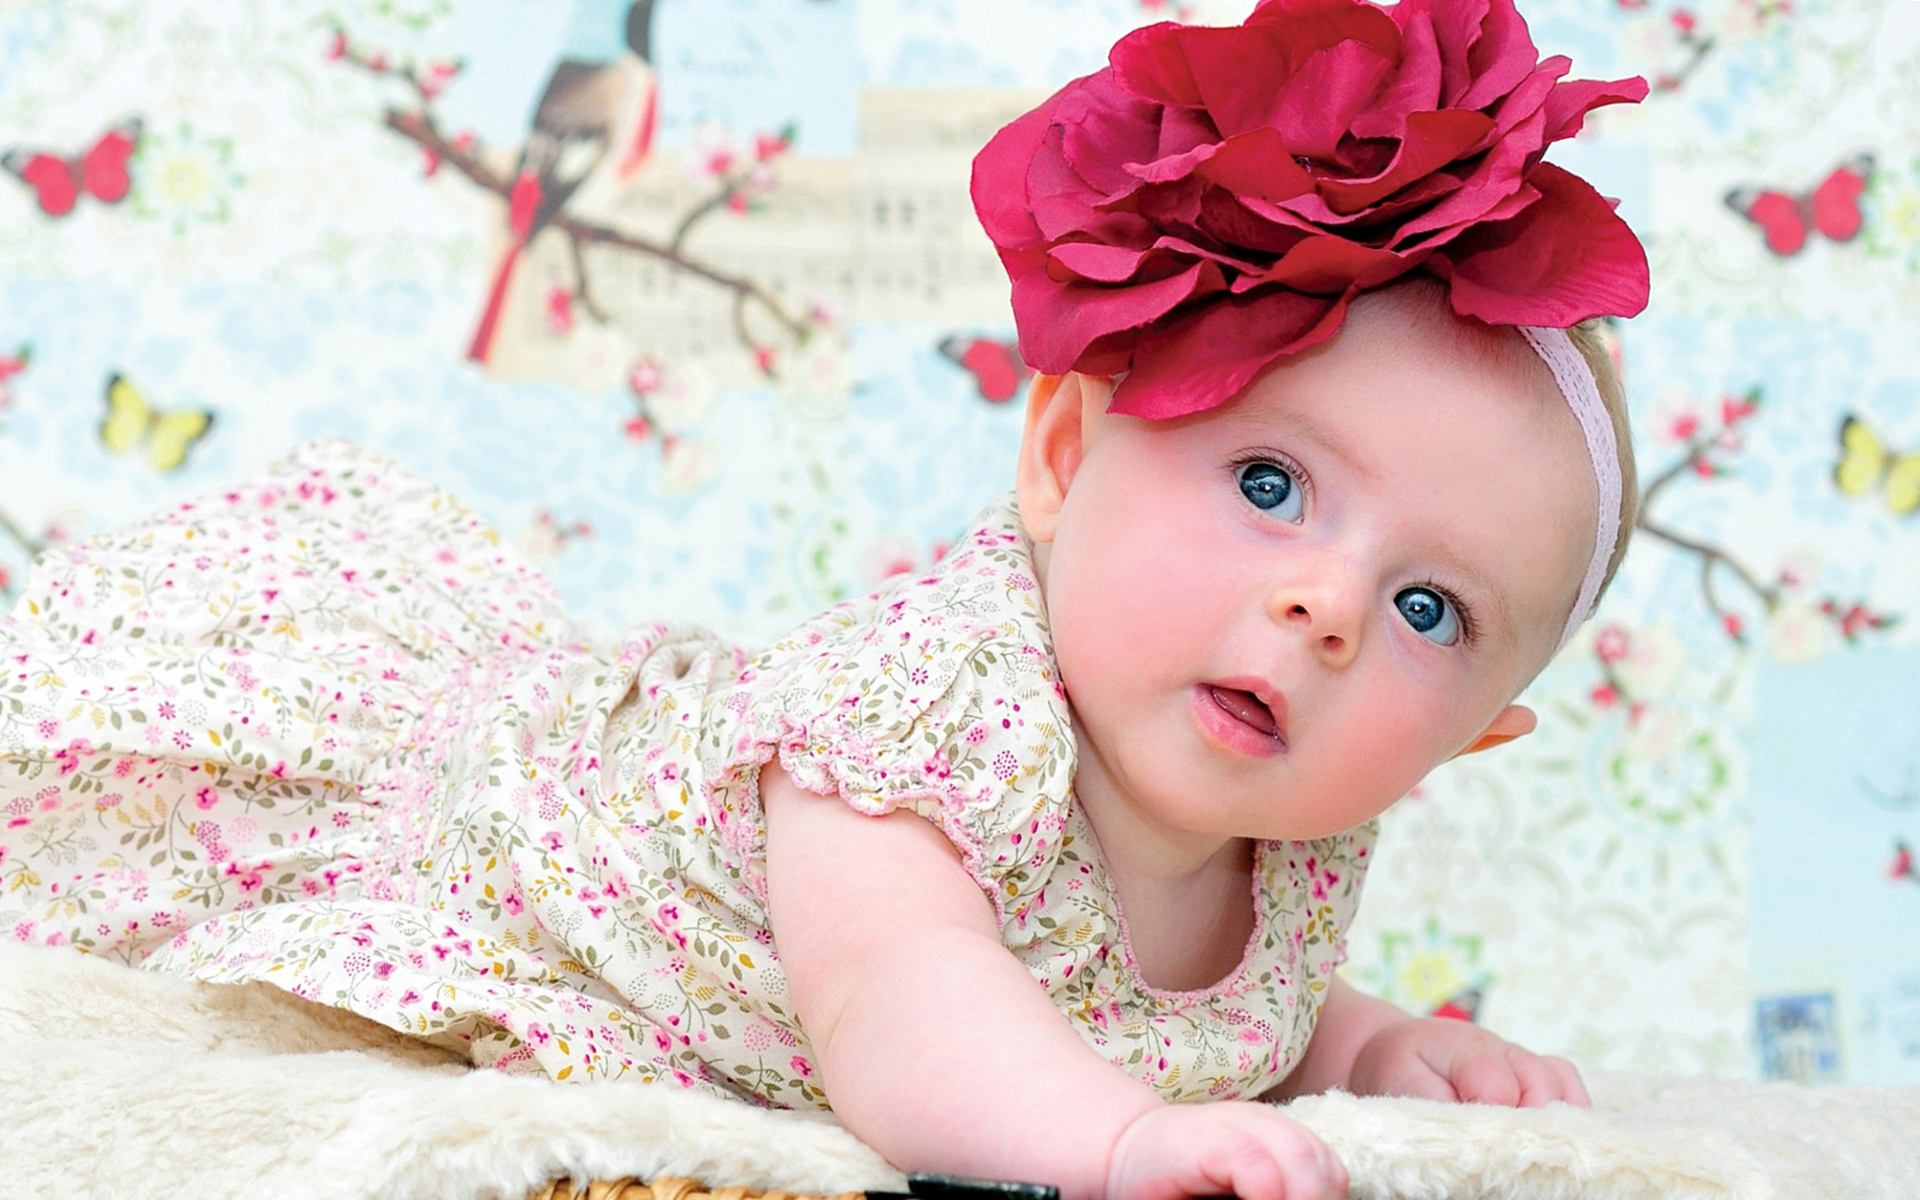 Cute and Lovely Baby Pictures Free Download  Allfreshwallpapers 1920x1200